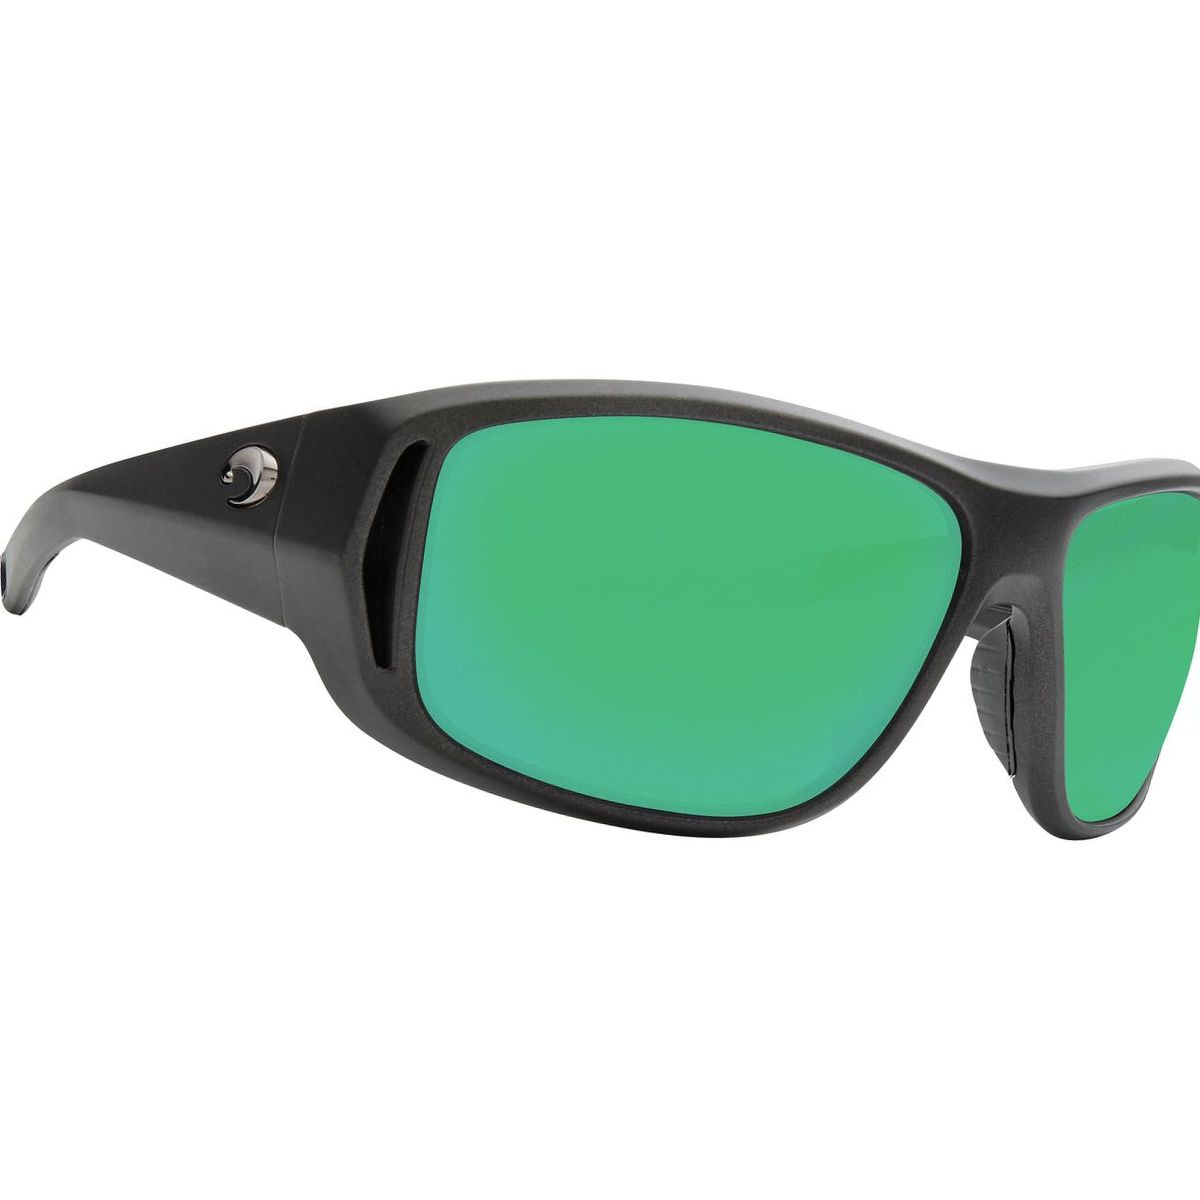 Costa Montauk 580P Polarized Sunglasses - Men's